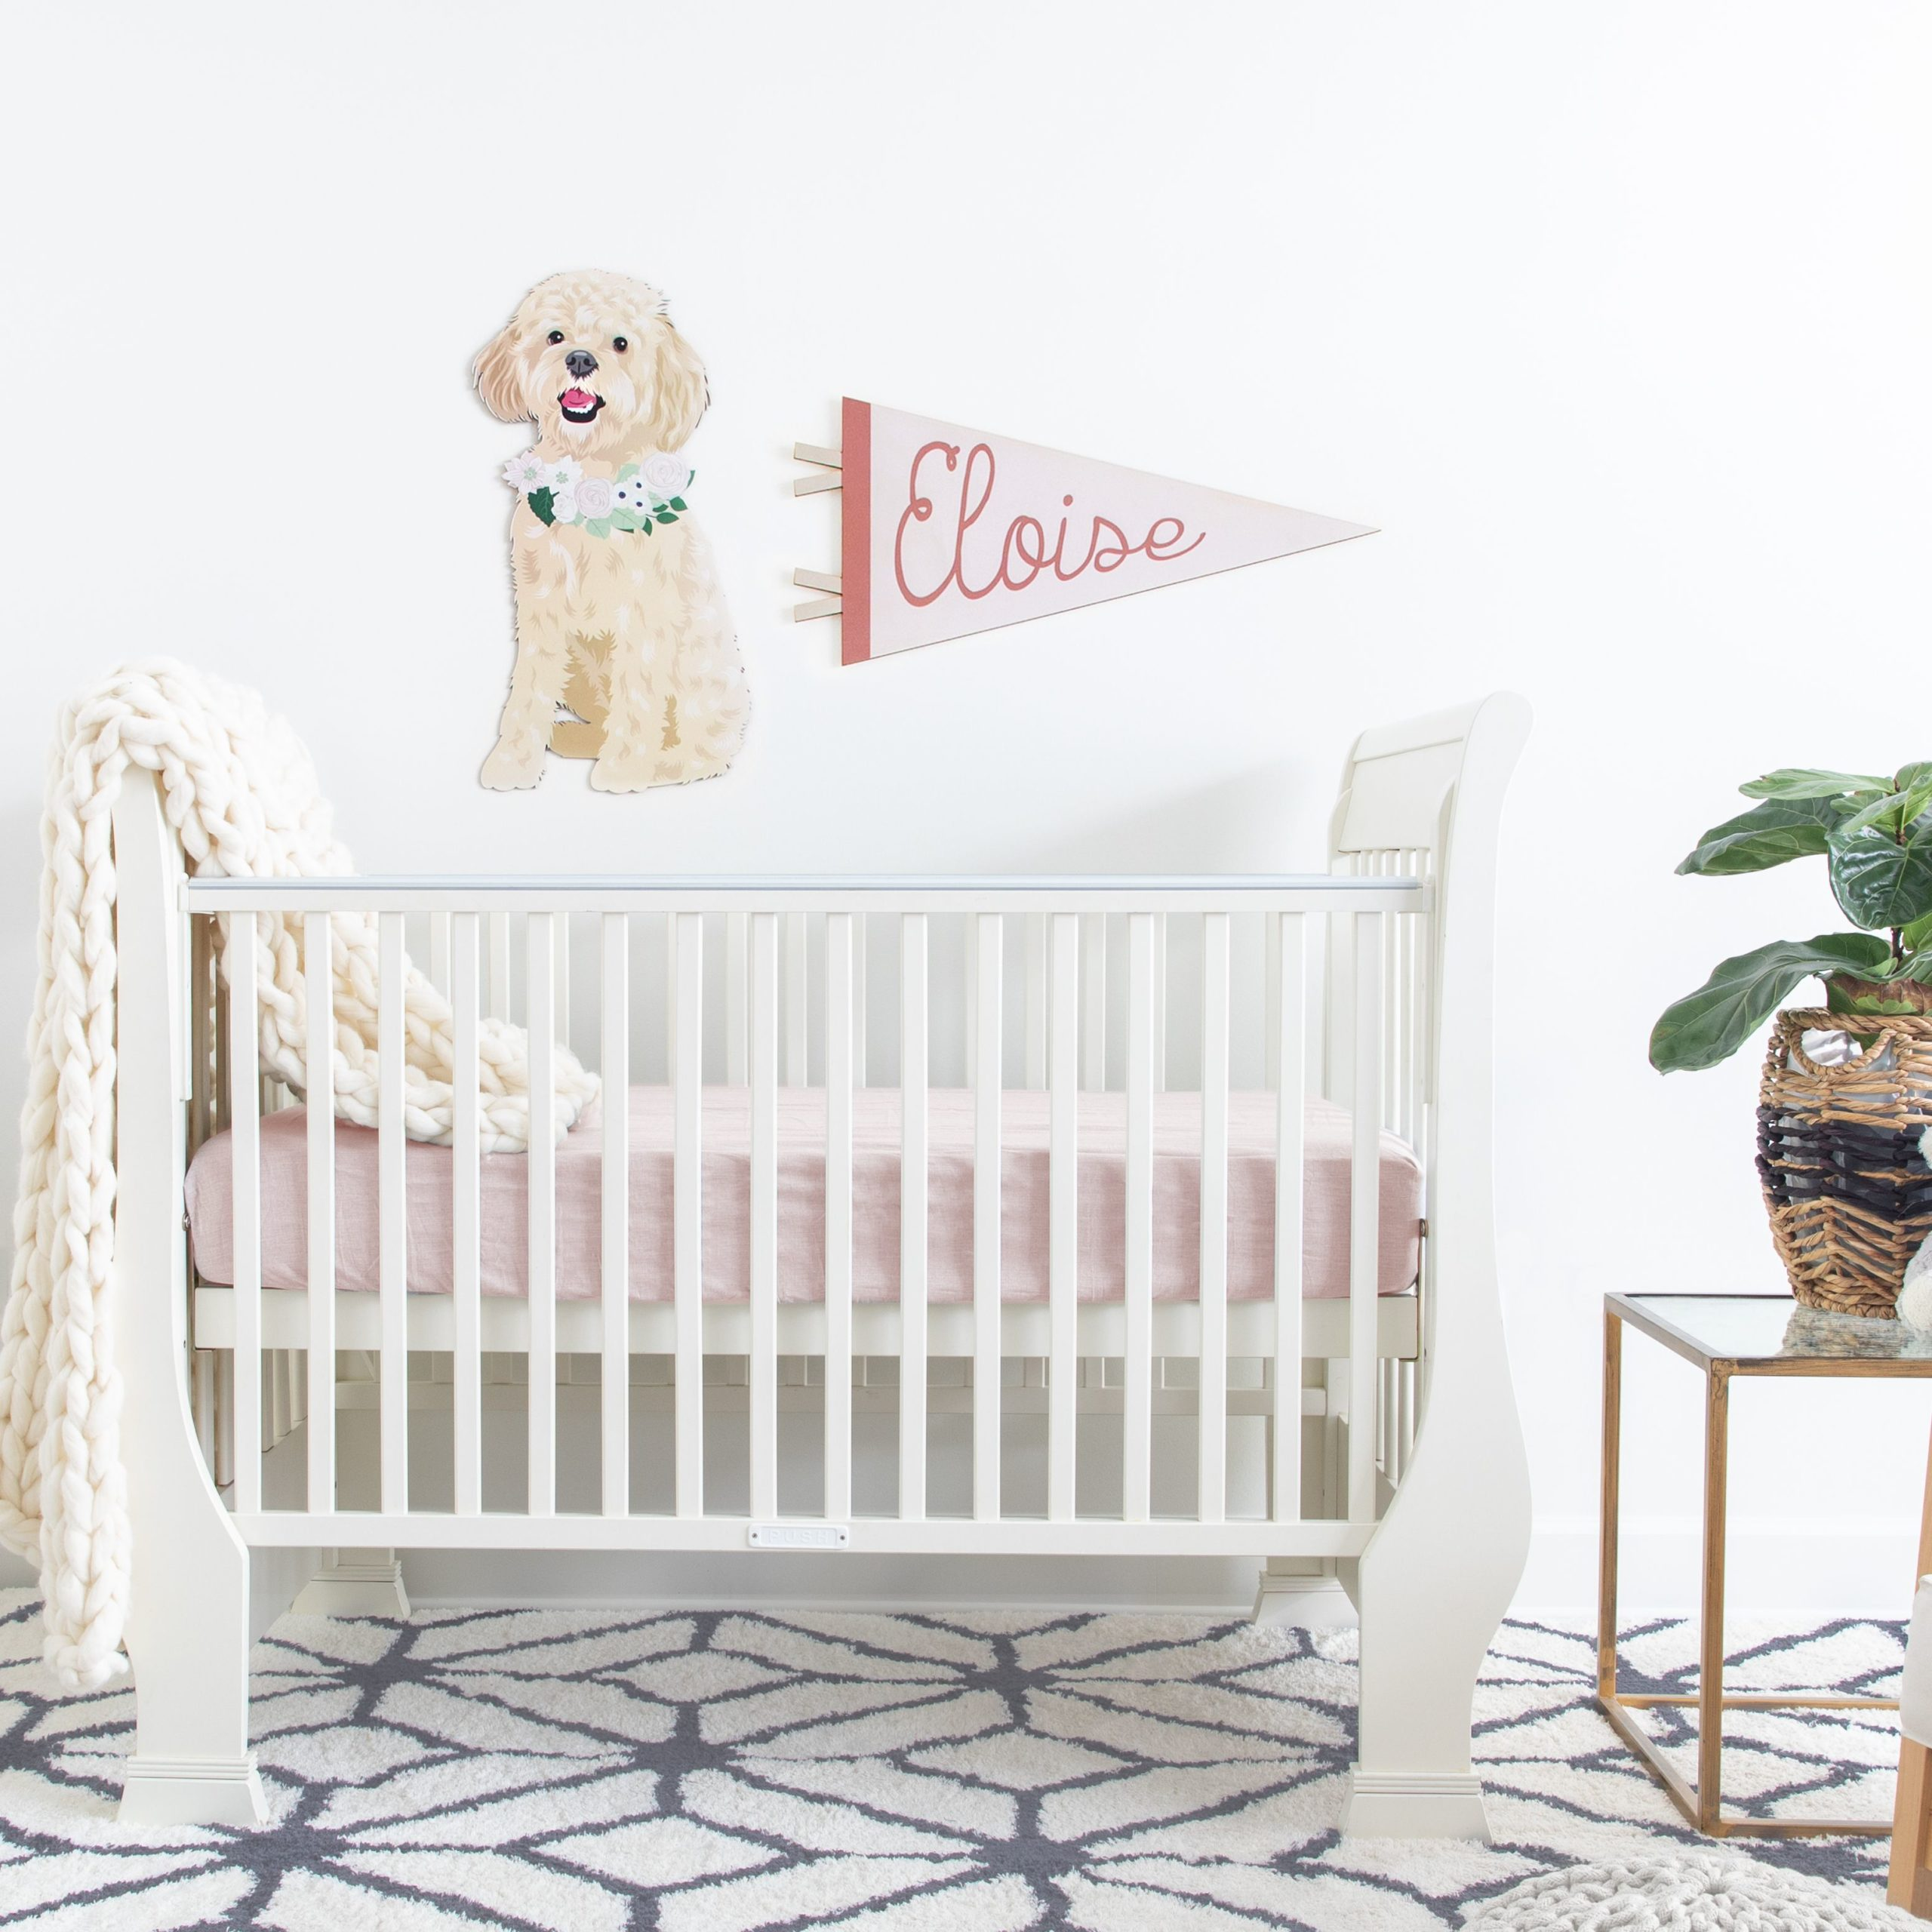 Custom Dog Portrait and Name Pennant Banner in Nursery